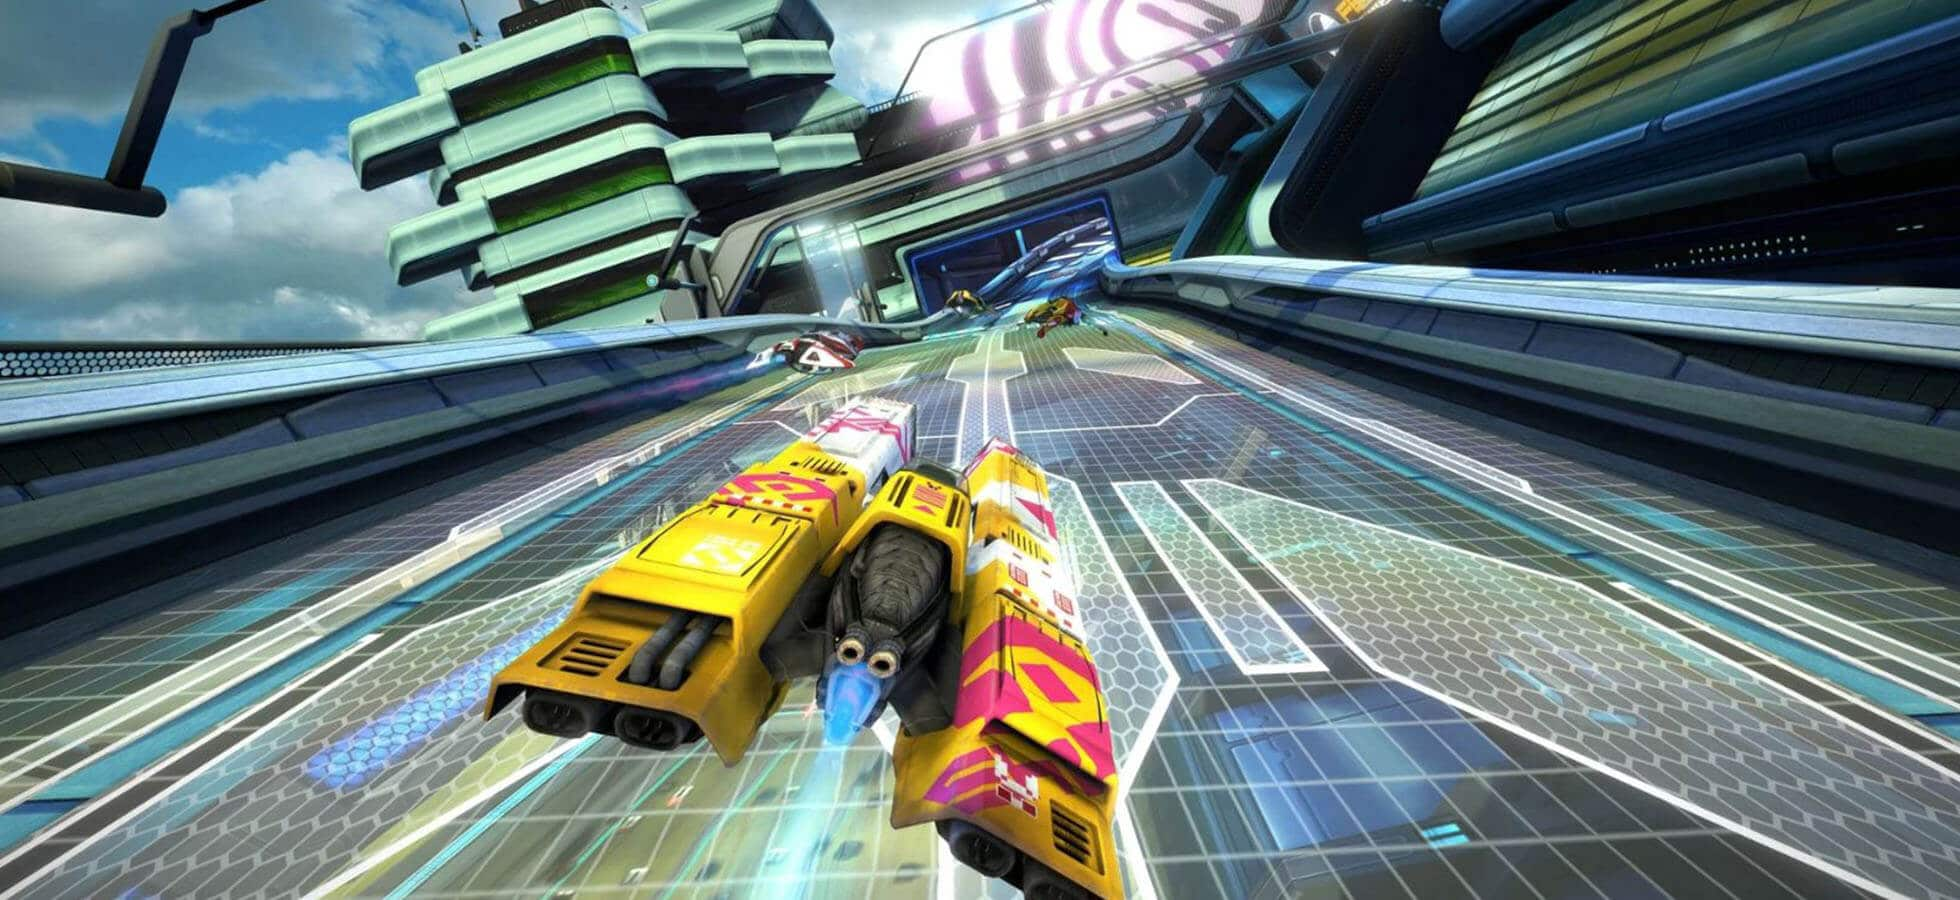 Wipeout Omega Collection is a sci-fi fast paced racing game